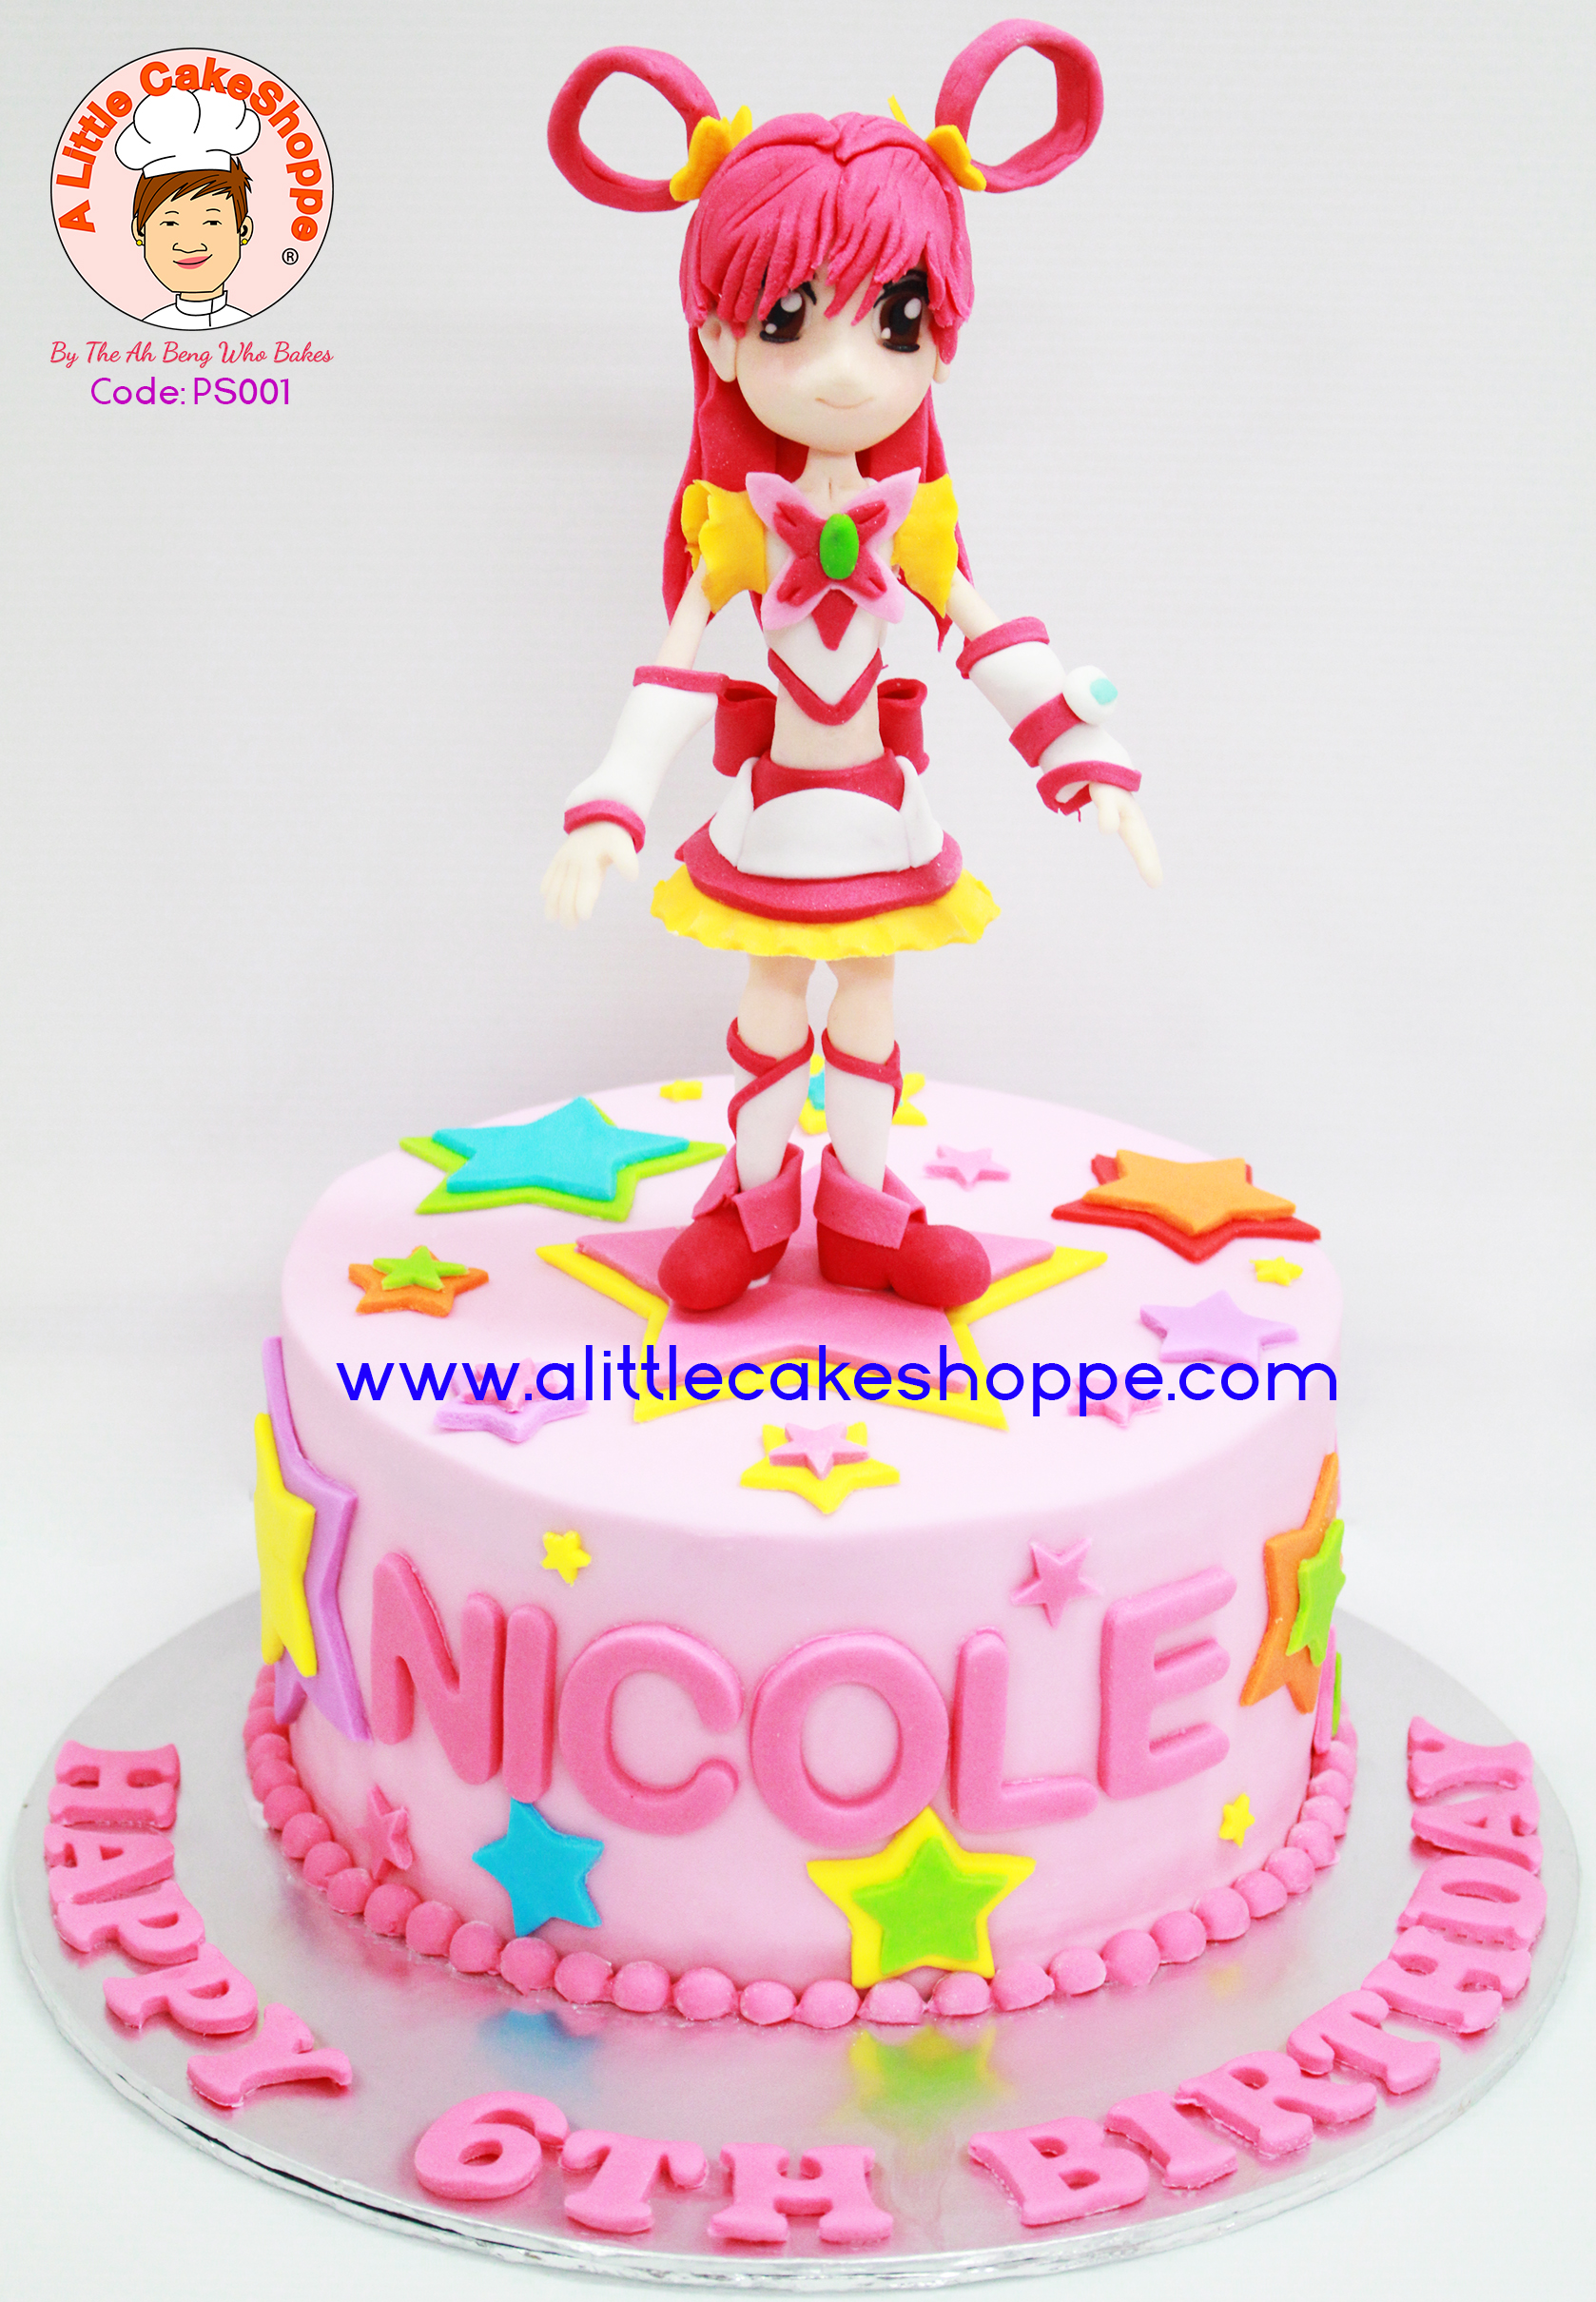 Best Customised Cake Shop Singapore custom cake 2D 3D birthday cake cupcakes desserts wedding corporate events anniversary 1st birthday 21st birthday fondant fresh cream buttercream cakes alittlecakeshoppe a little cake shoppe compliments review singapore bakers SG cake shop cakeshop ah beng who bakes pretty cure